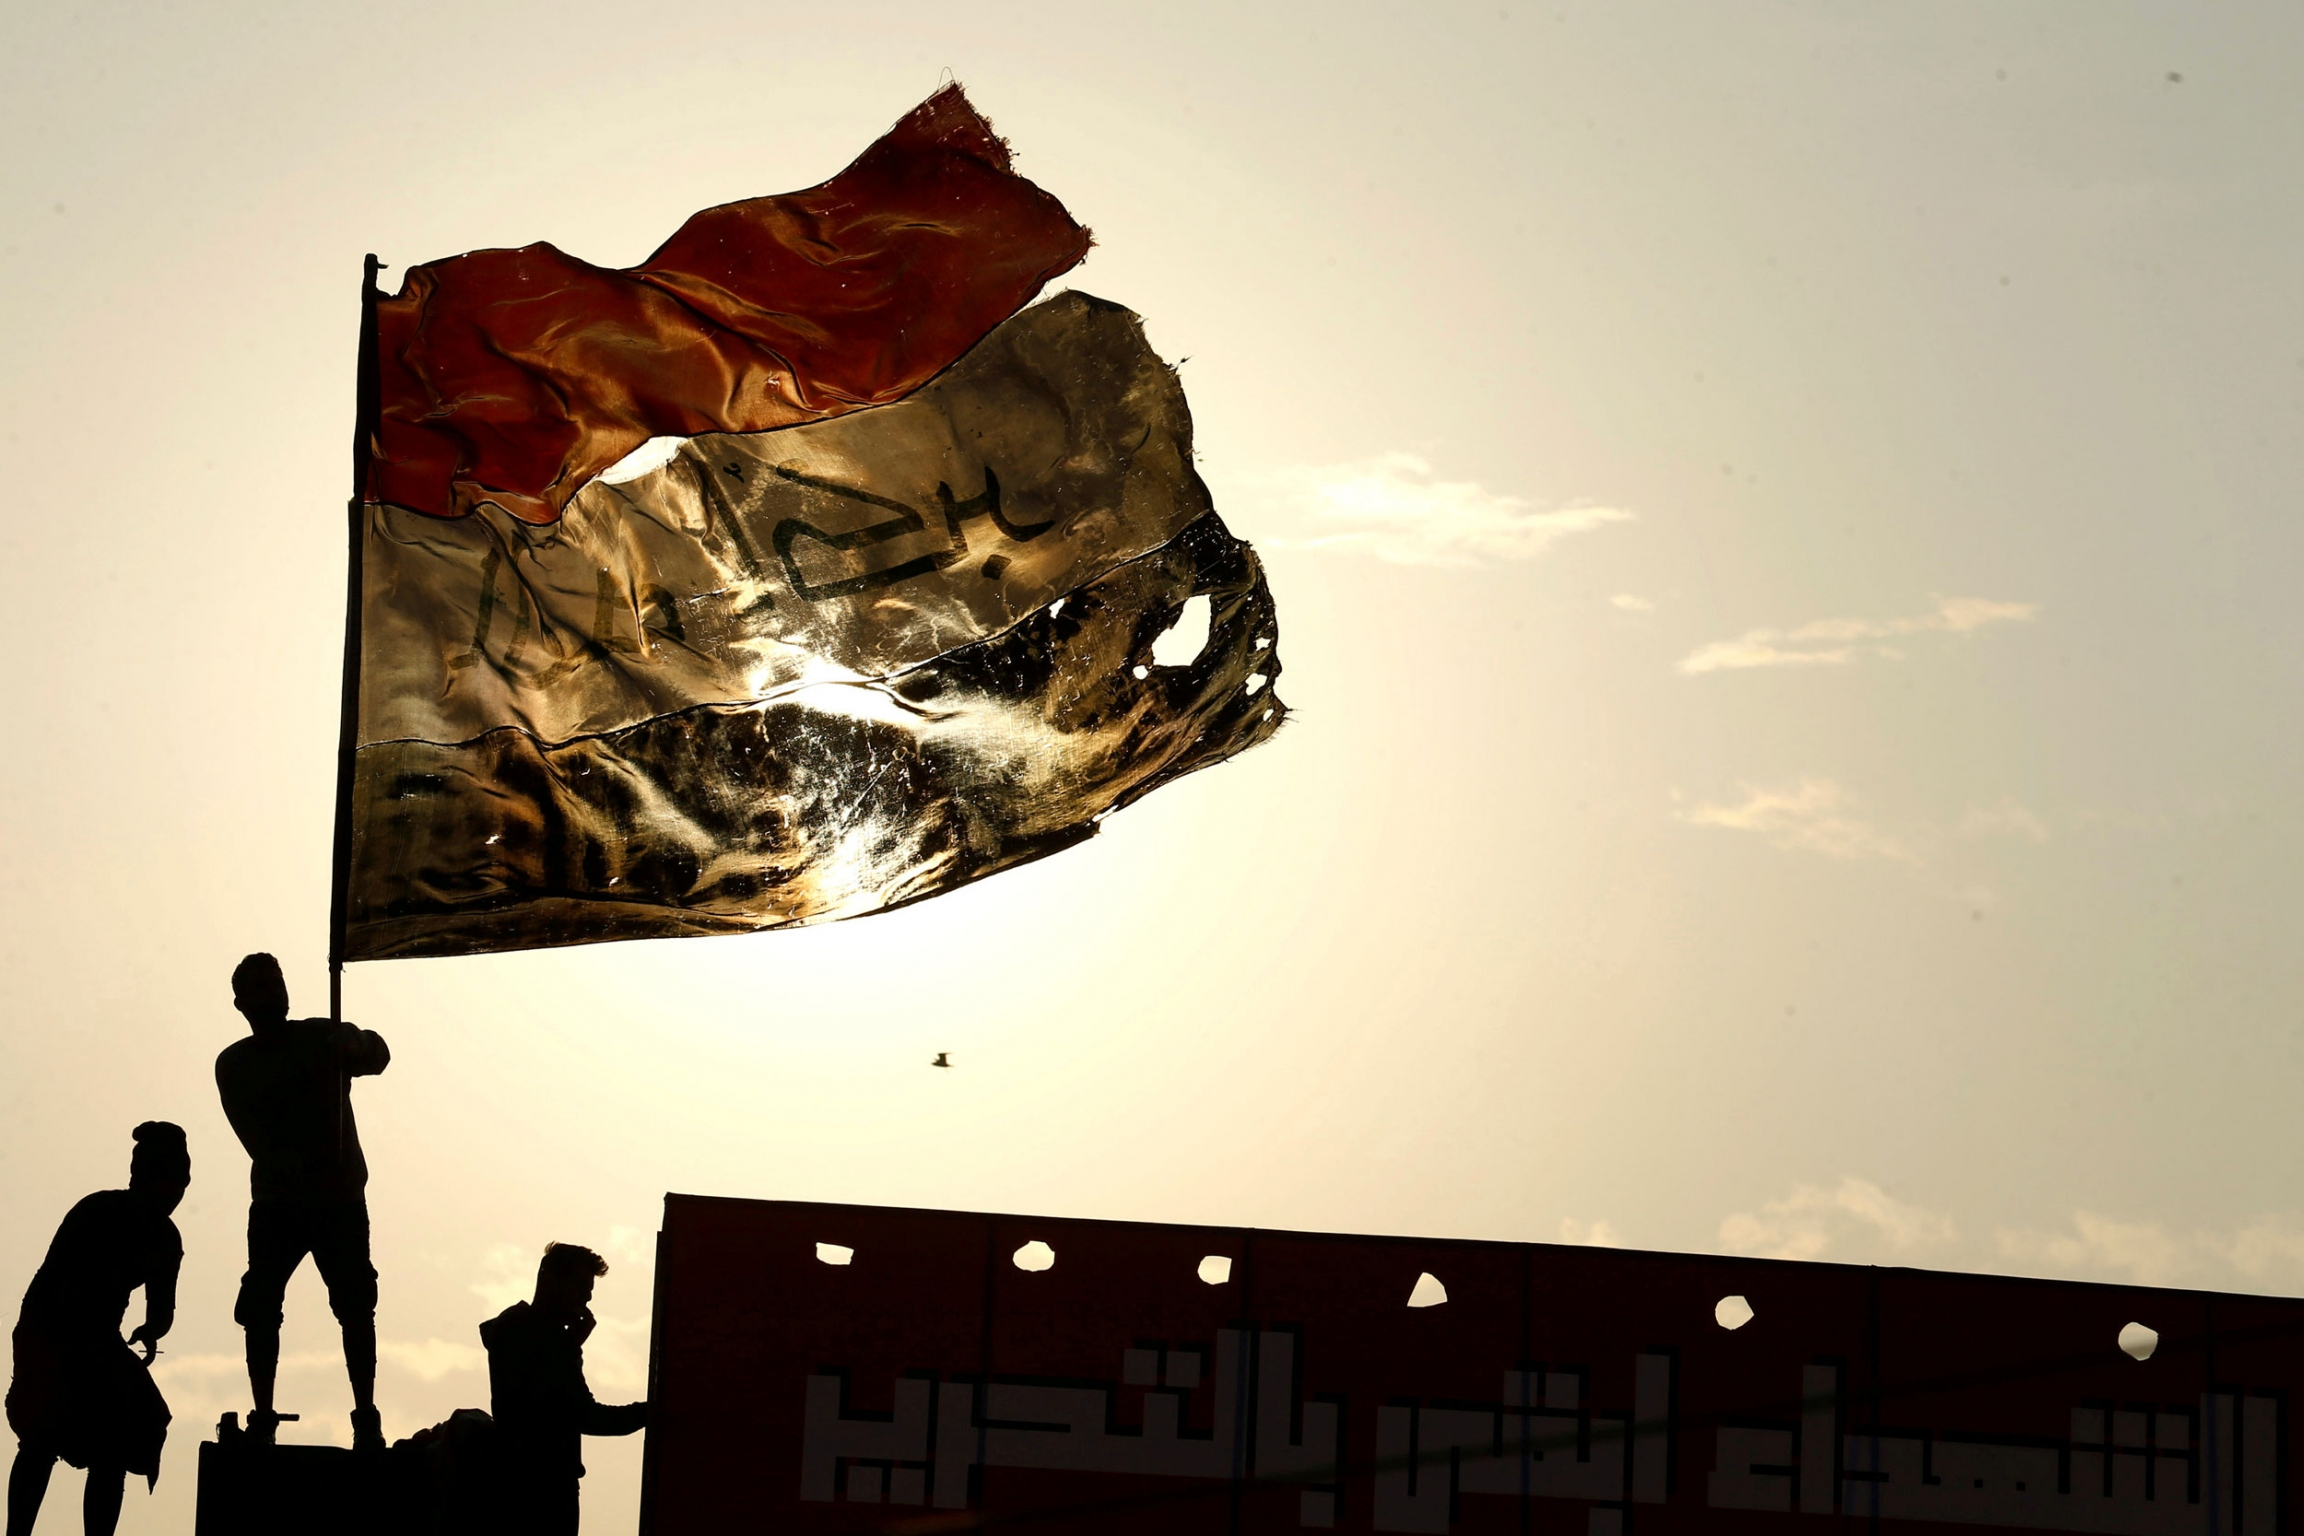 Three people are shown with one holding a large tattered Iraqi flag